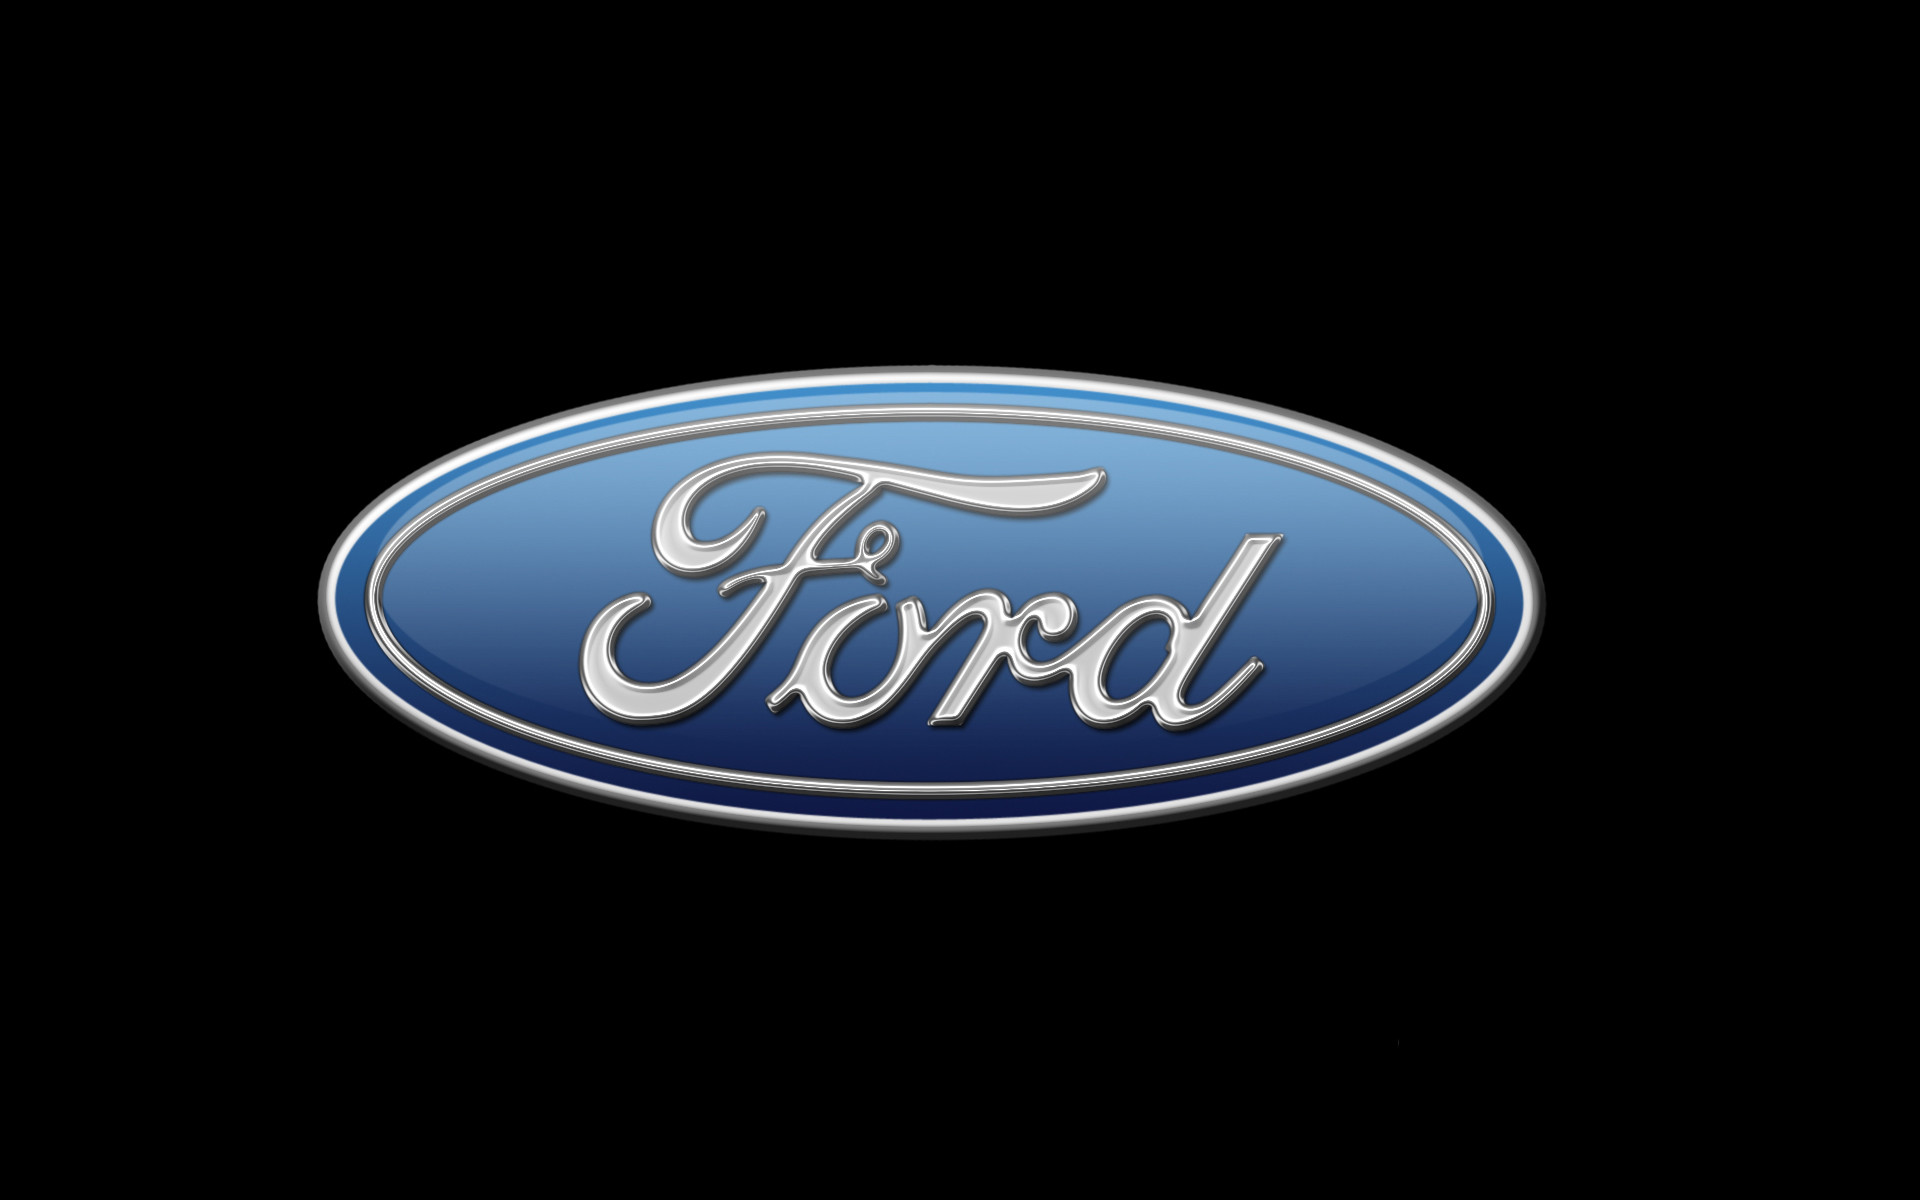 0 Collection of Ford Emblem Wallpaper on HDWallpapers Collection of Ford  Wallpaper on HDWallpapers